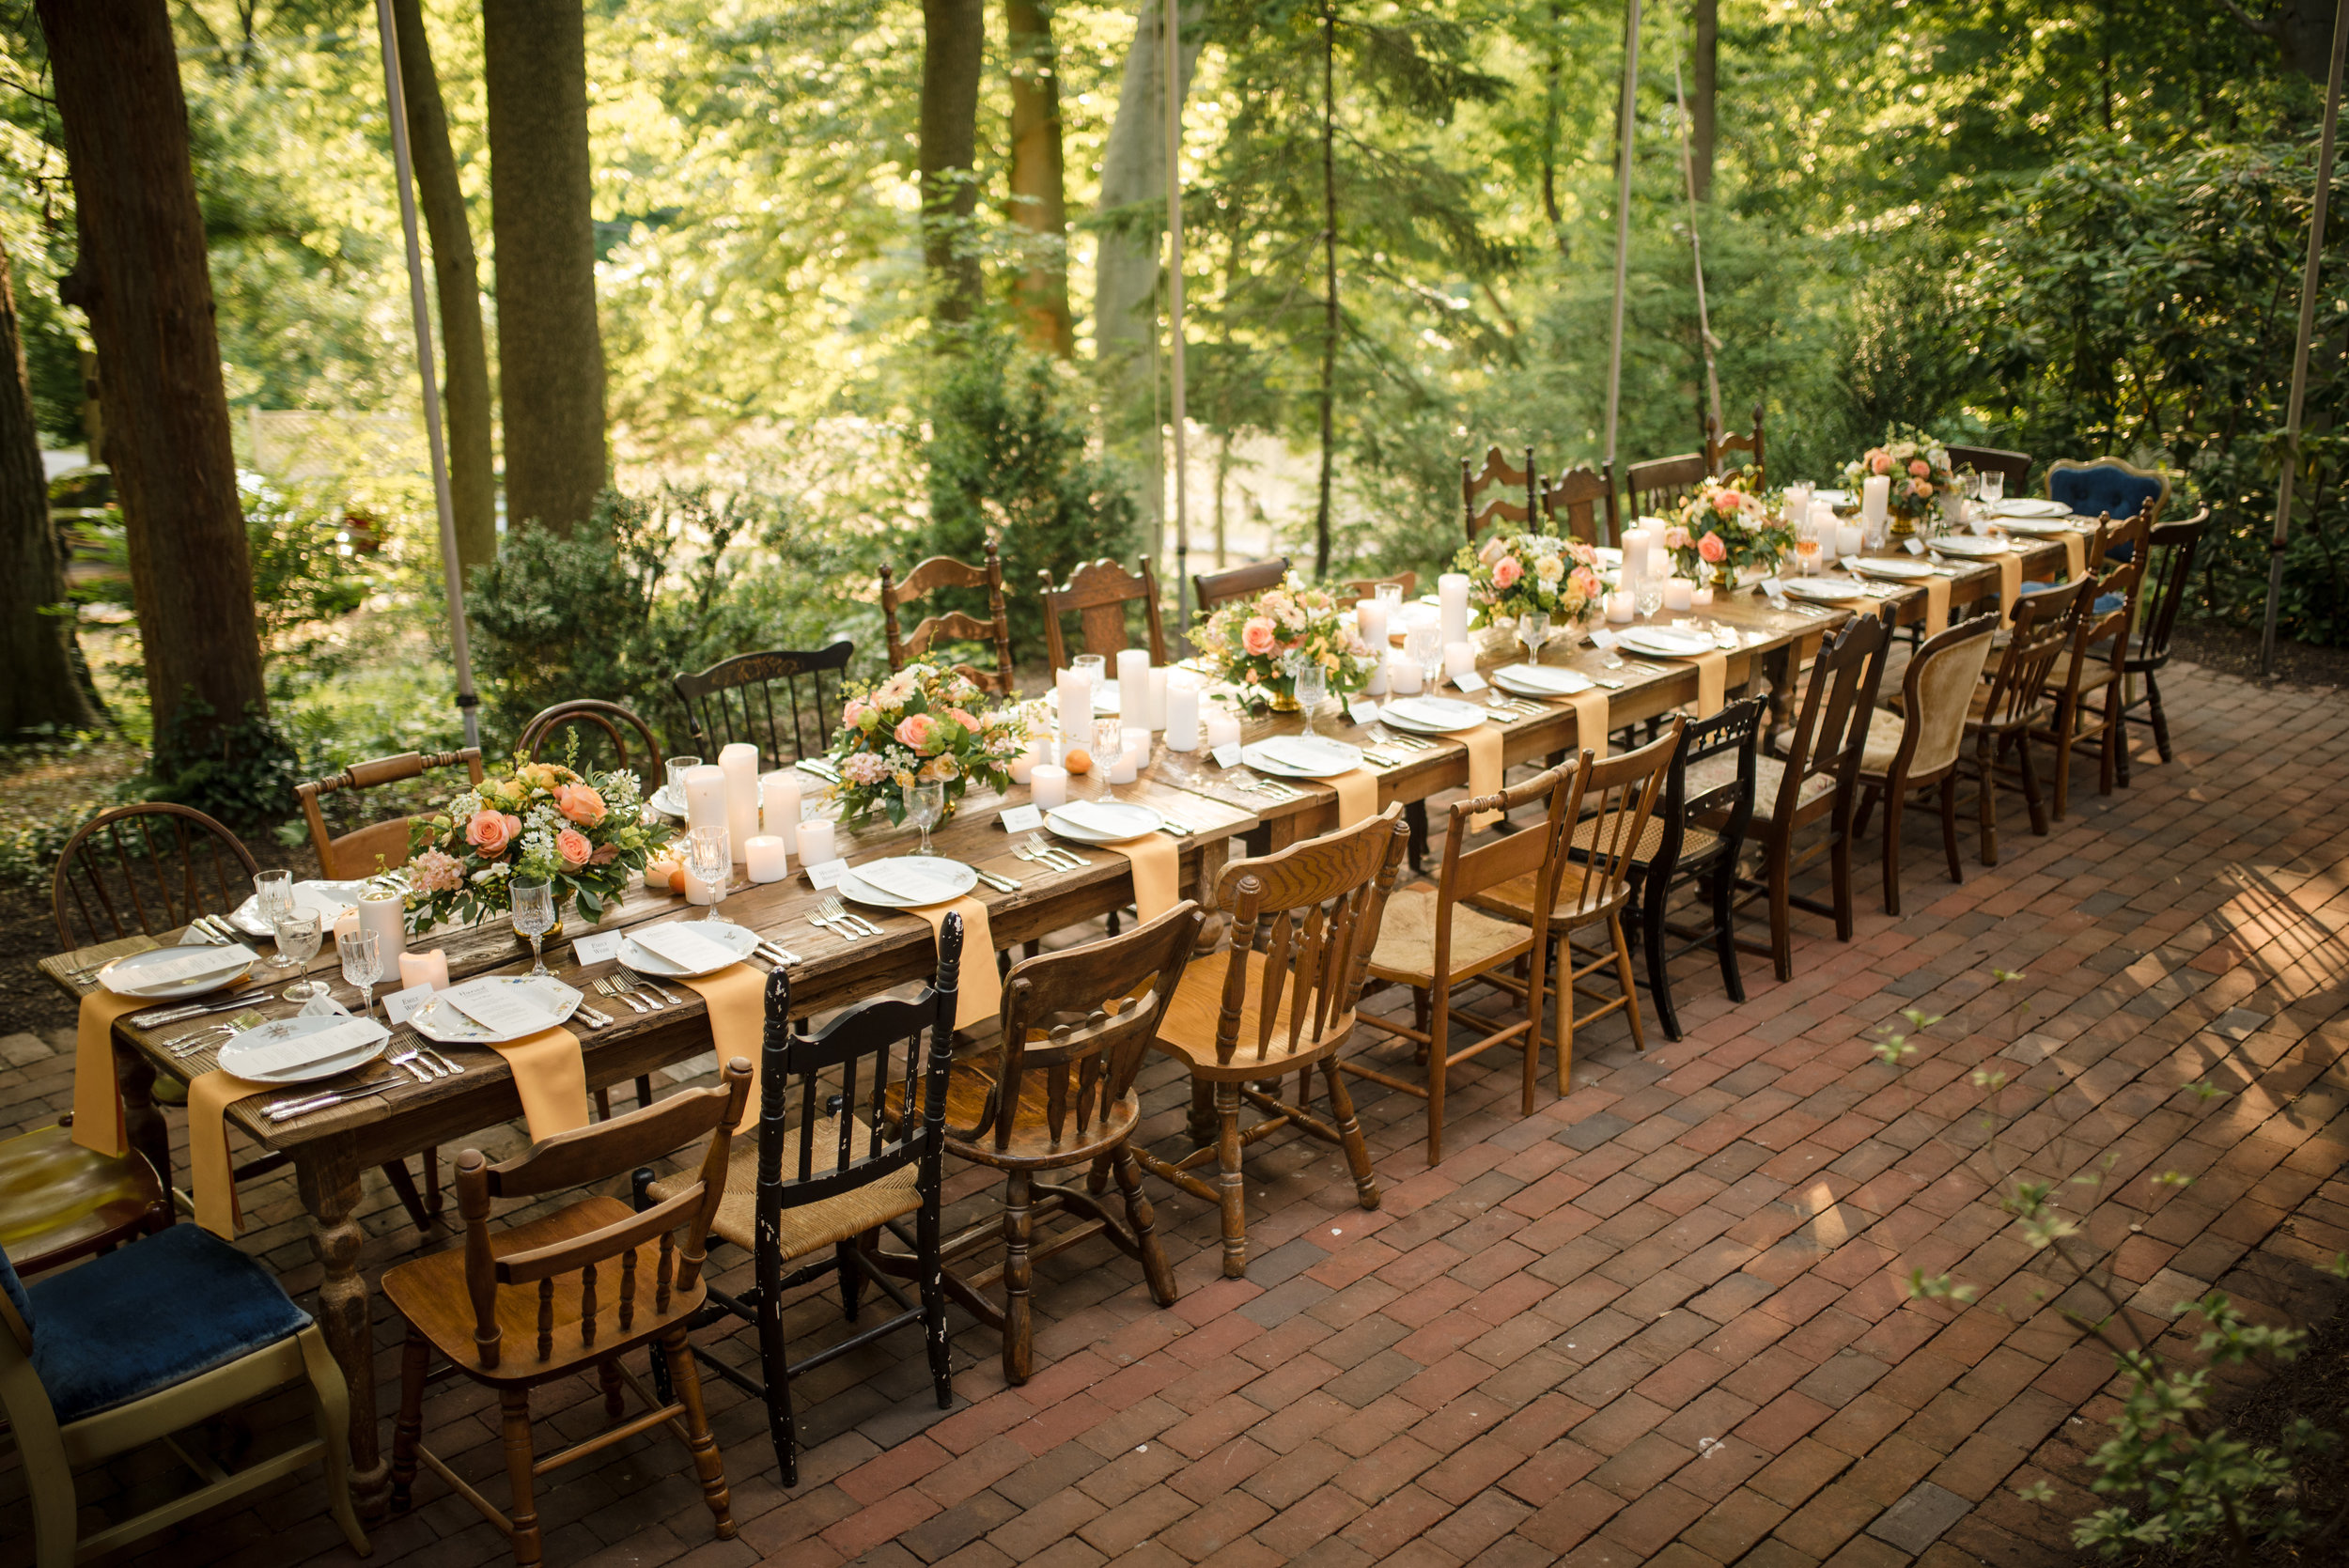 West-Chester-PA-Faunbrook-Harvest-Dinner-Series-Apricot-ChristieGreenPhotography-36.jpg